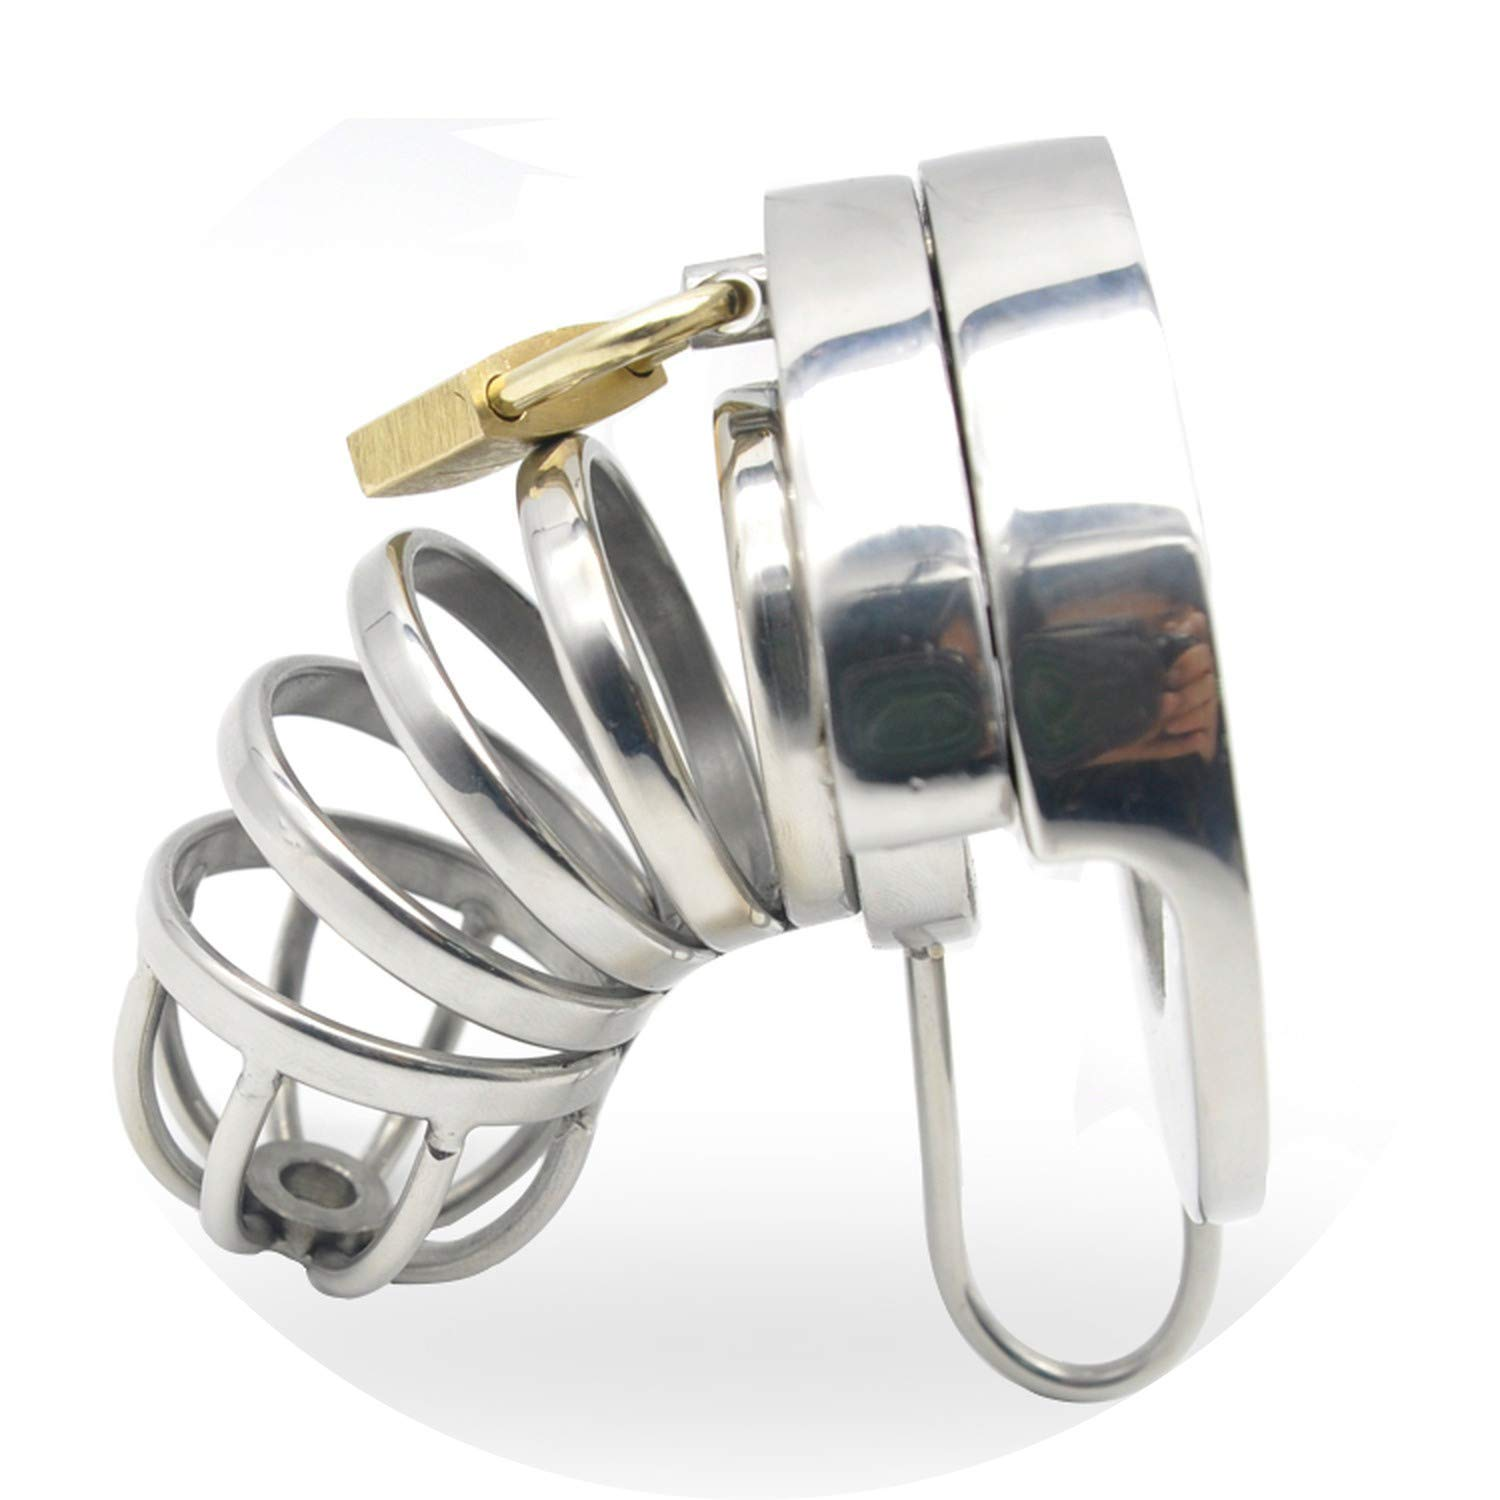 Couple Ring Intim^acy Surprise-Show Double Lock Stainless Steel Male Chástí-ty Device Cage Virginity Male Lock Ring Chástí-ty Belt Public Game A291,40mm